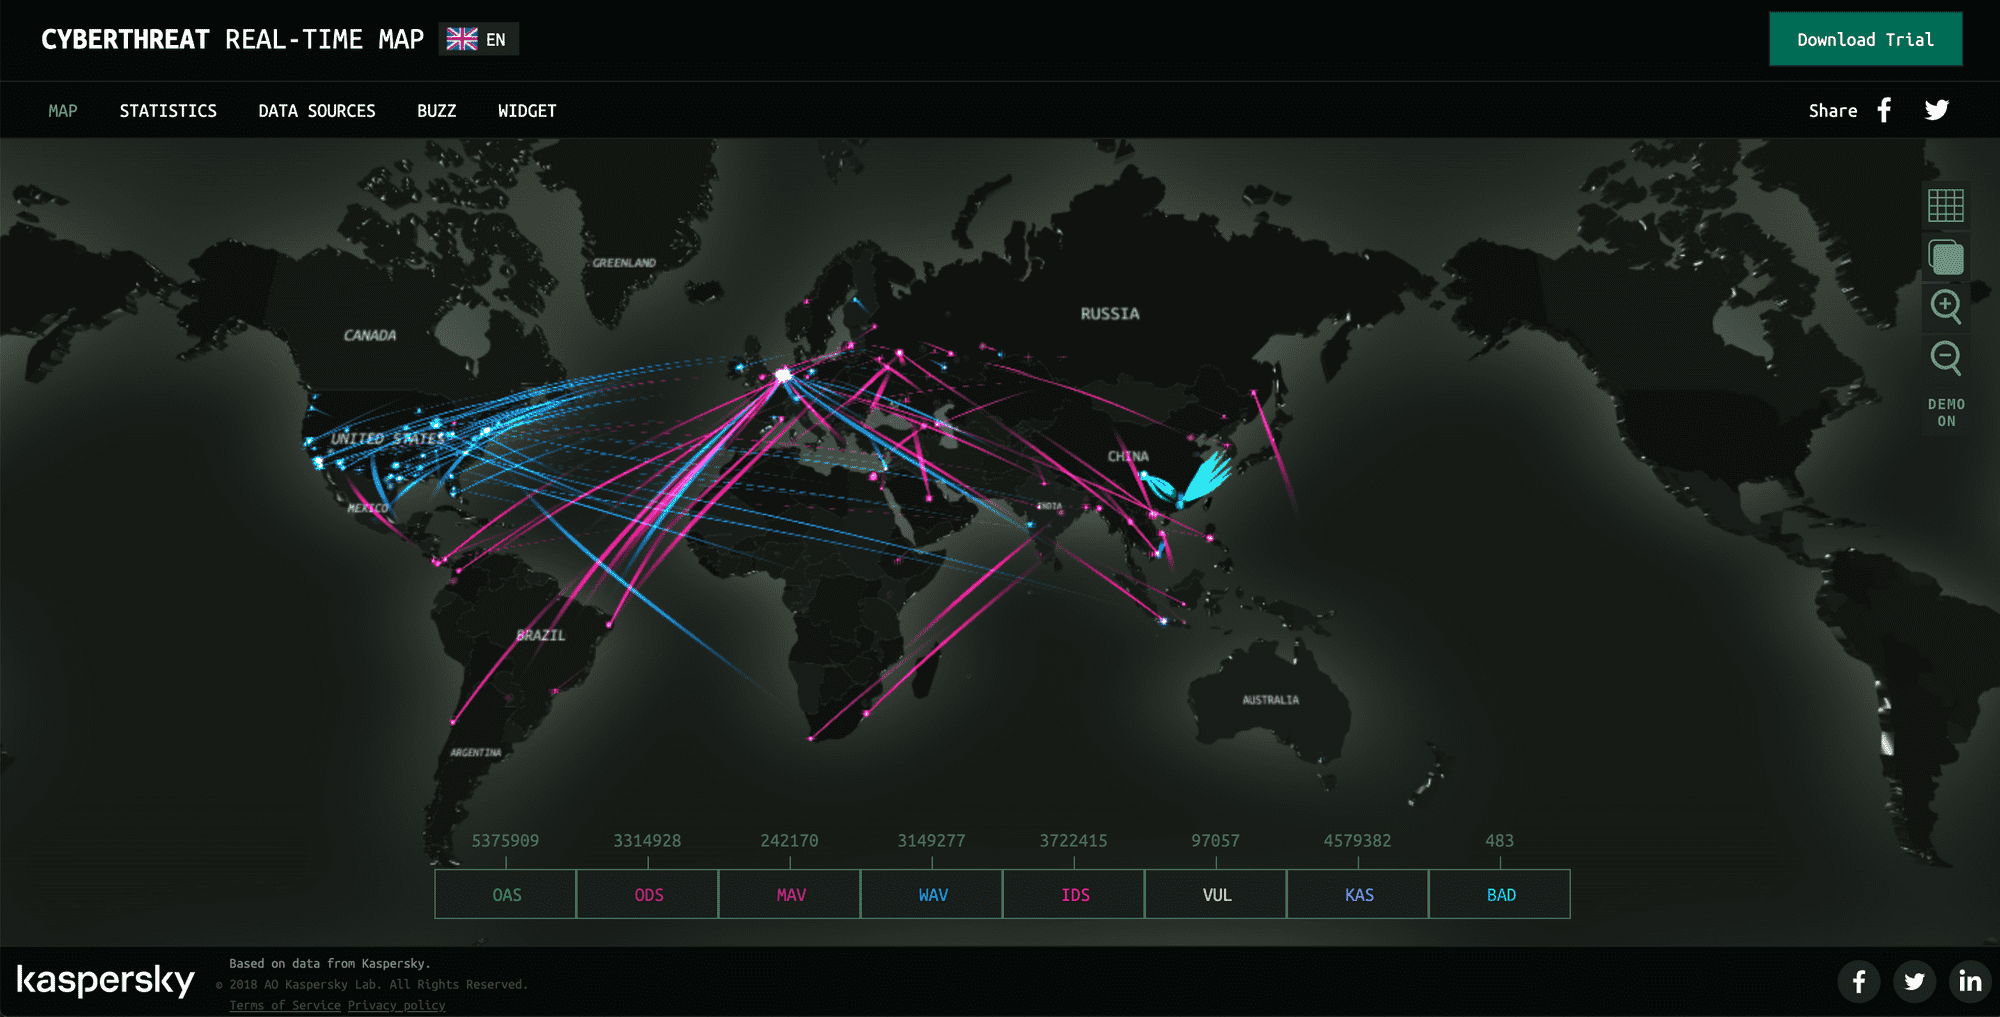 Kaspersky Cyberthreat Real-Time Map